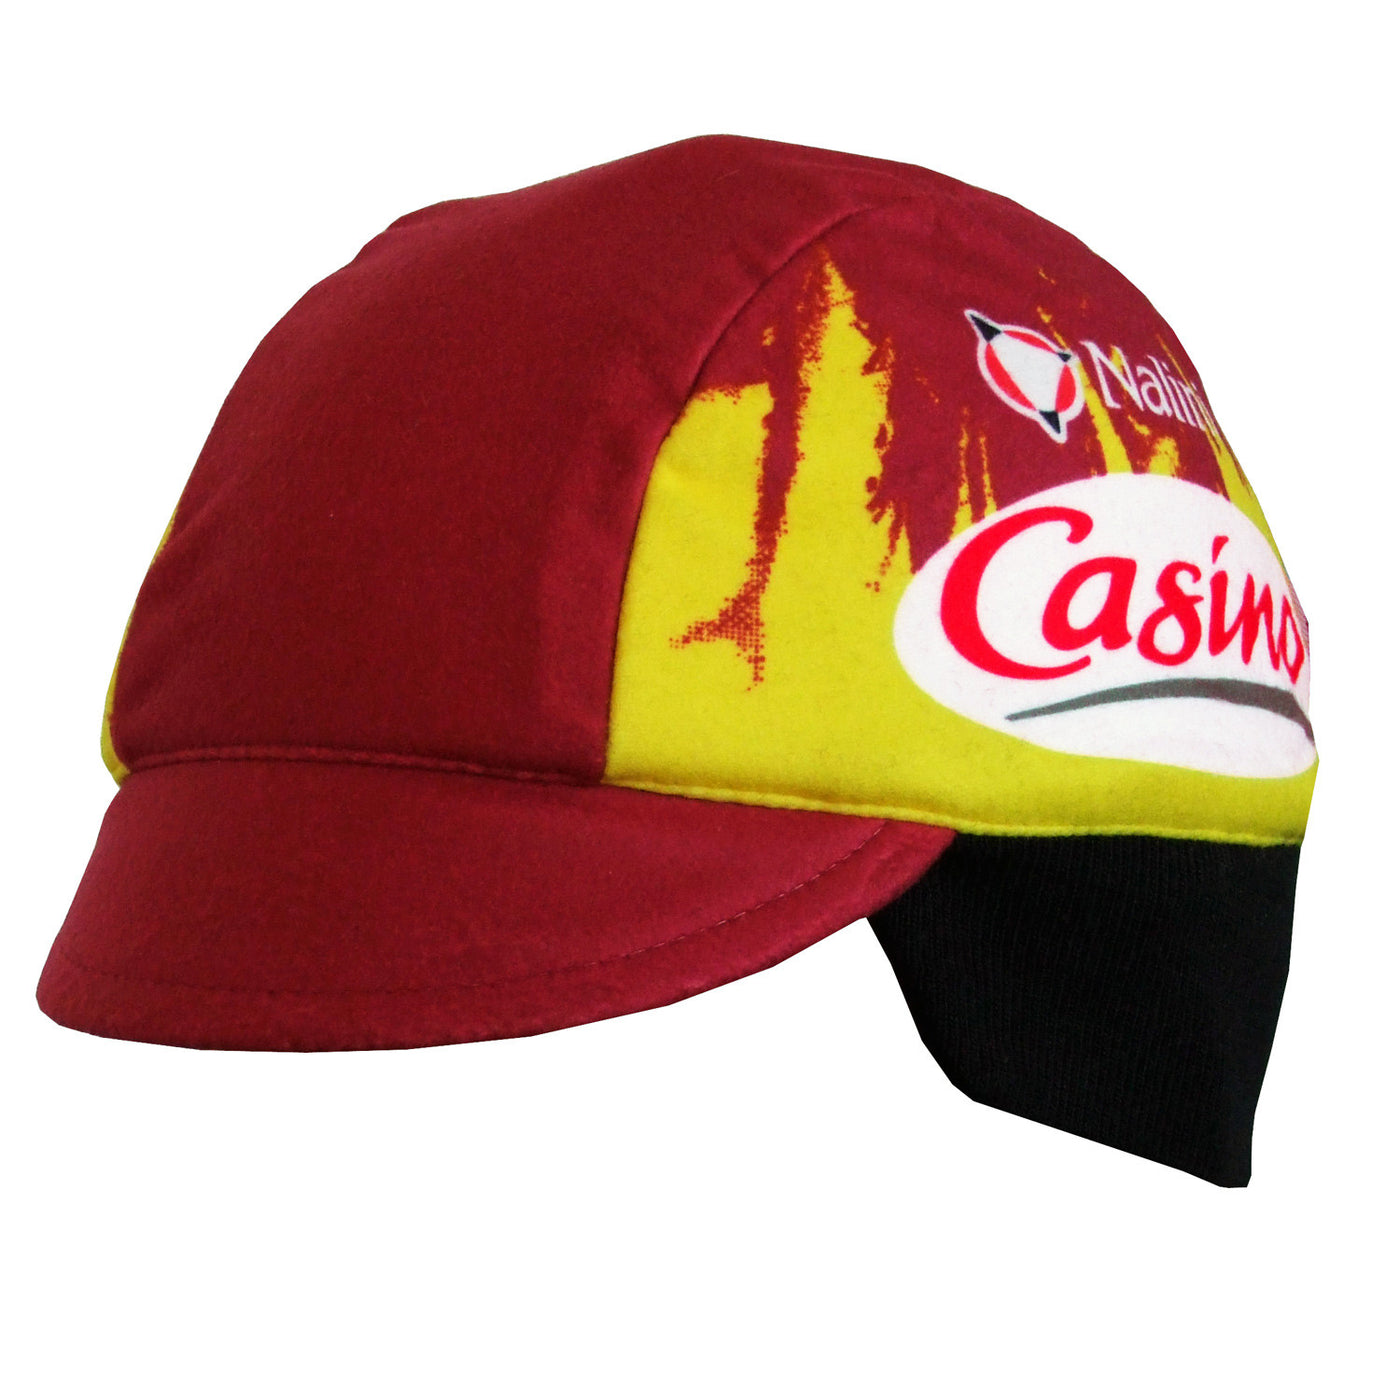 Cafe De Colombia Retro Cotton Cap Prendas Ciclismo